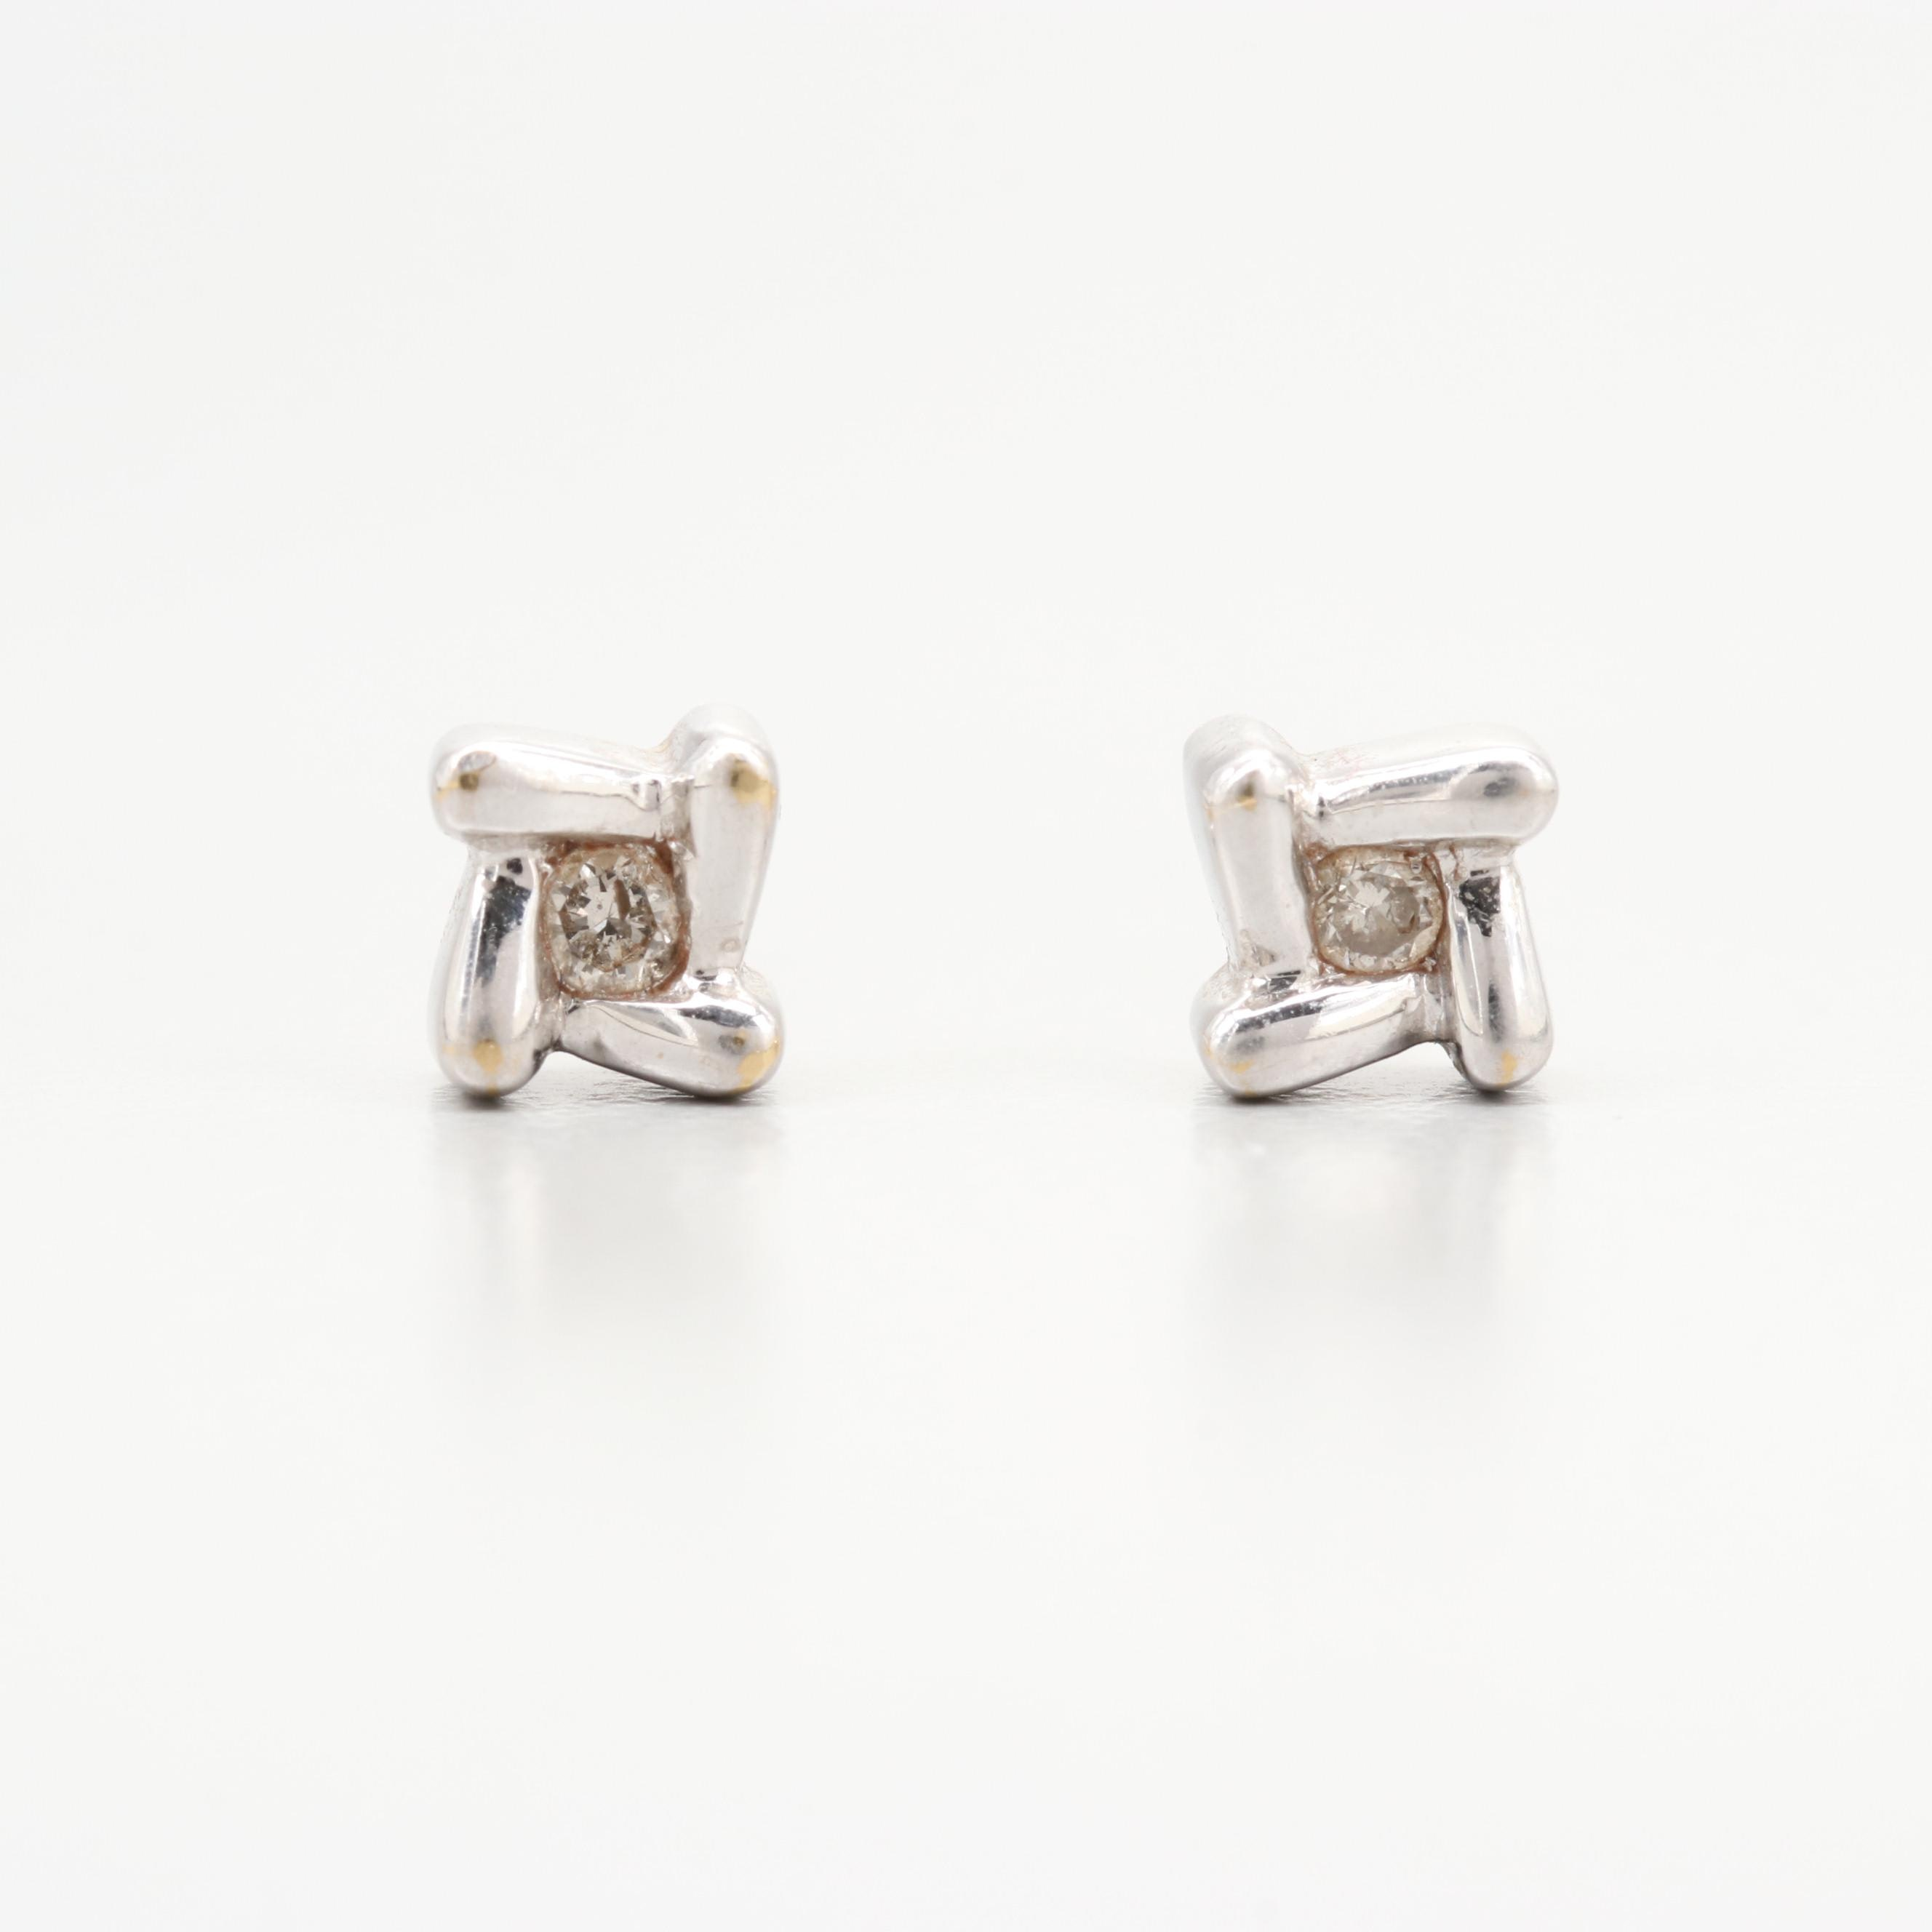 10K Two-Tone Gold Diamond Stud Earring with 14K Yellow Gold Back